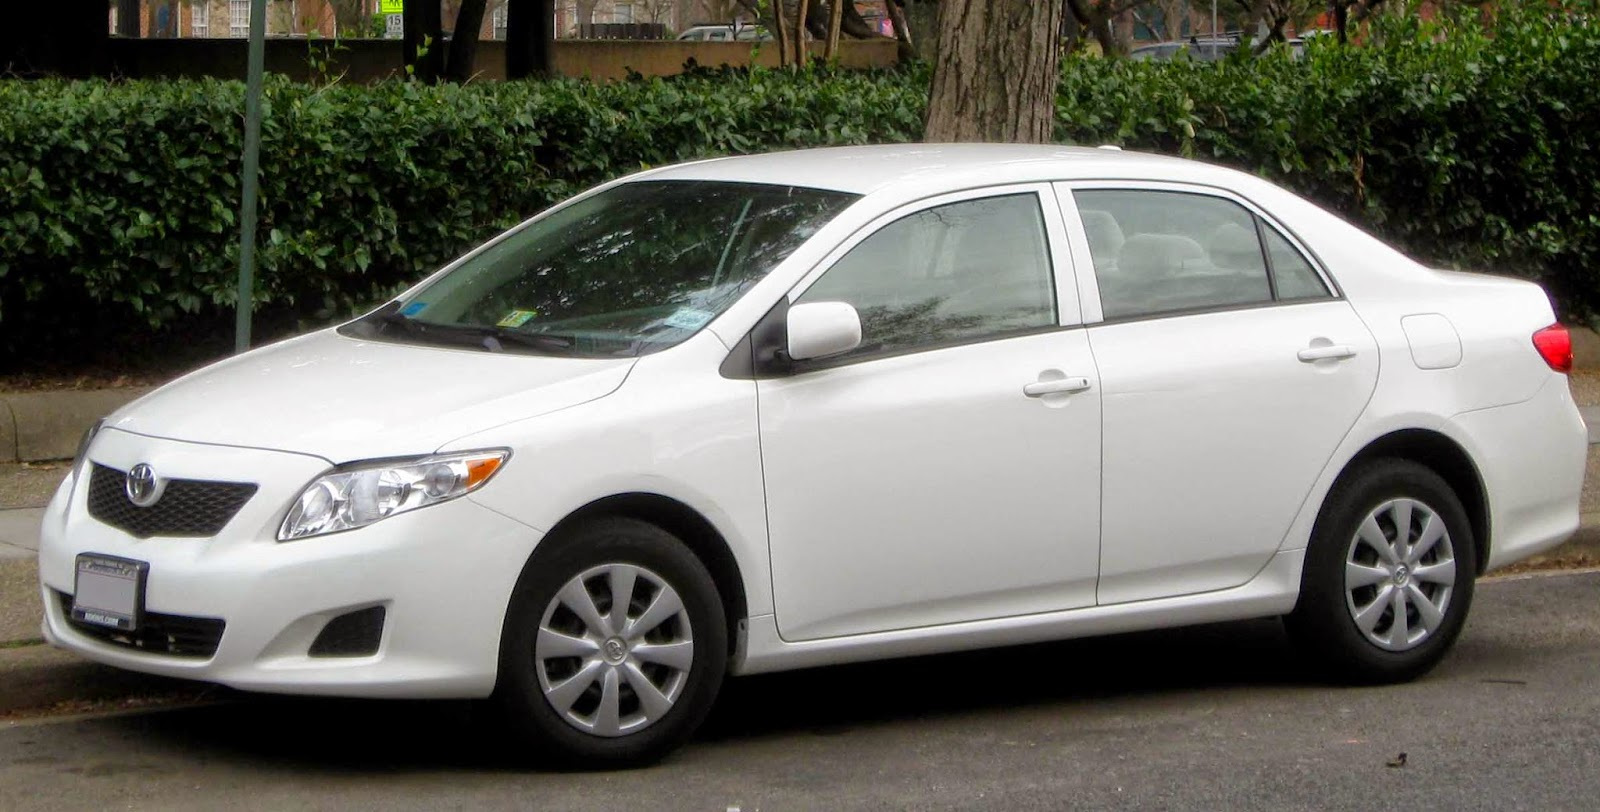 With over 40 million sold, the Corolla is one of the most popular and best selling cars in the world.